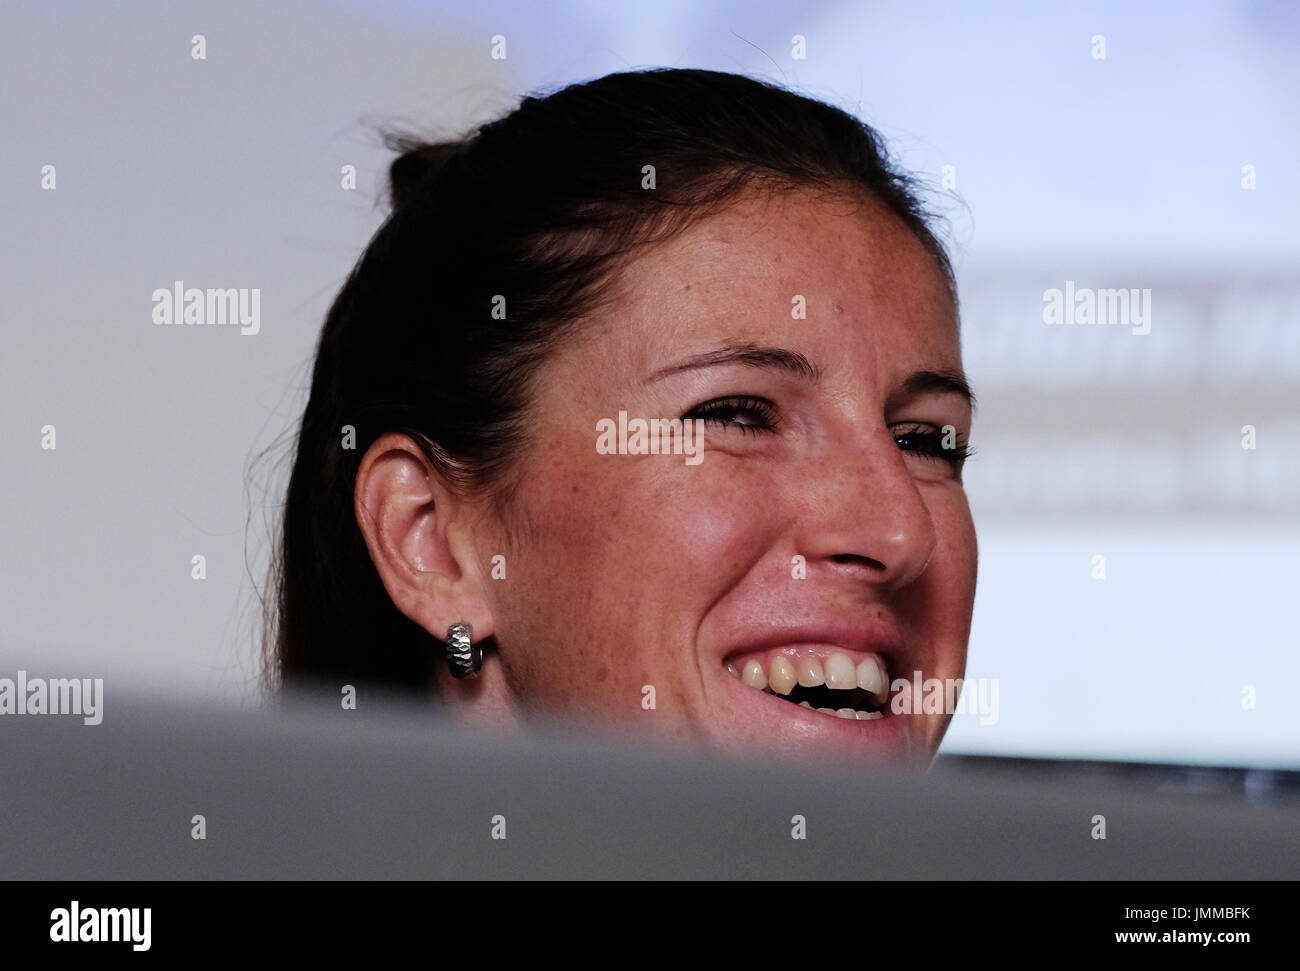 Prague, Czech Republic. 28th July, 2017. Czech athlete Zuzana Hejnova smiles during the press conference prior to the IAAF World Championships London 2017, in Prague, Czech Republic, on July 28, 2017. Credit: Roman Vondrous/CTK Photo/Alamy Live News - Stock Image